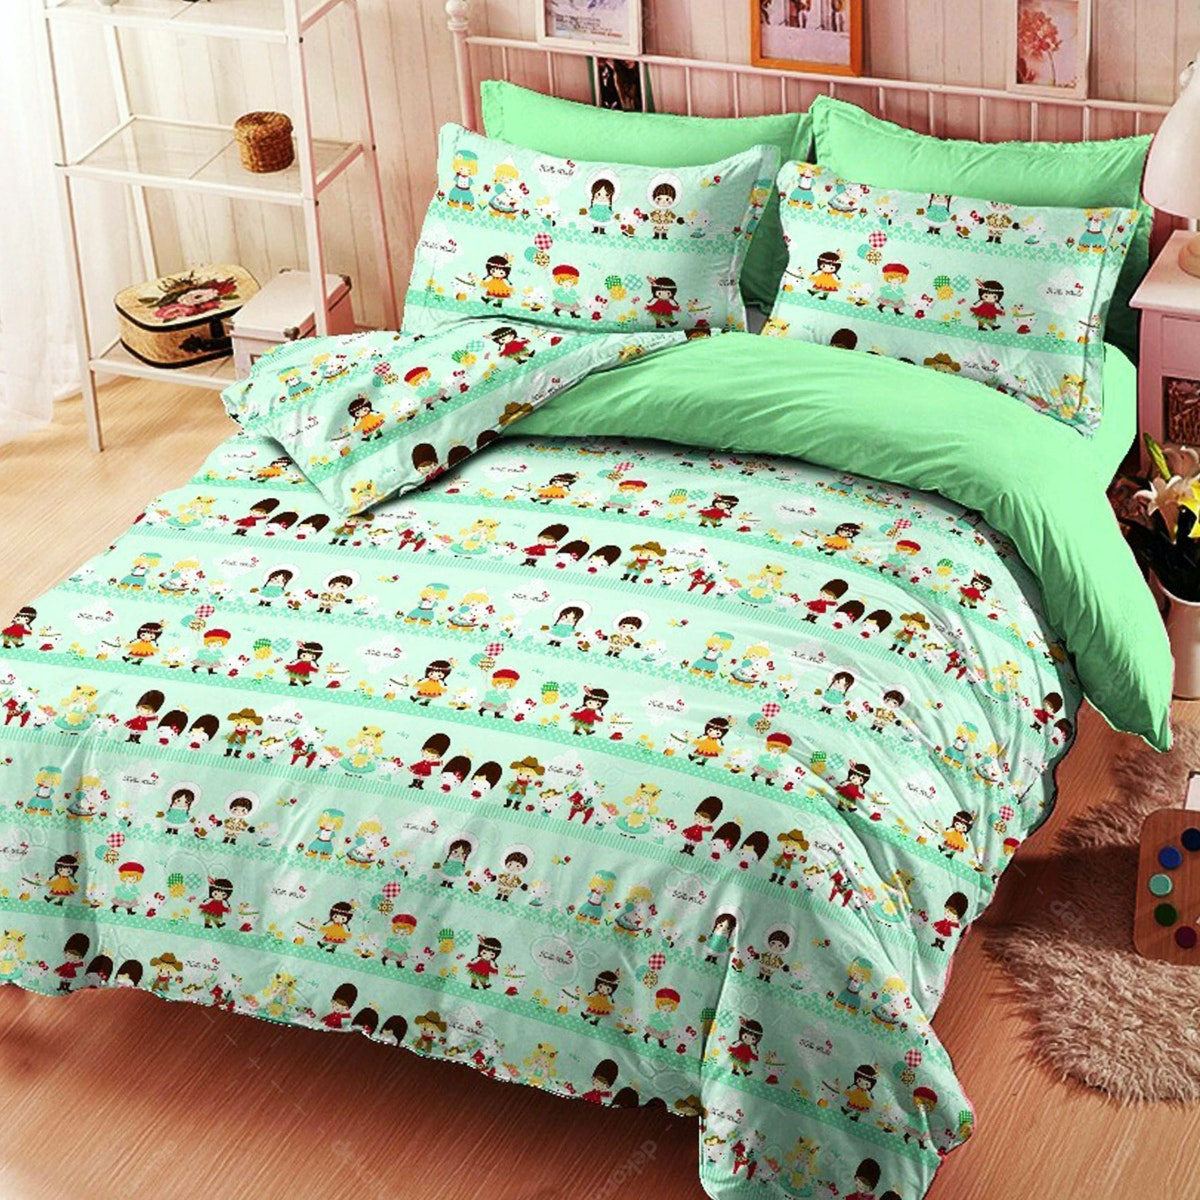 Yukero Sprei Motif Hello Kitty World Travel Hijau 160x200x20